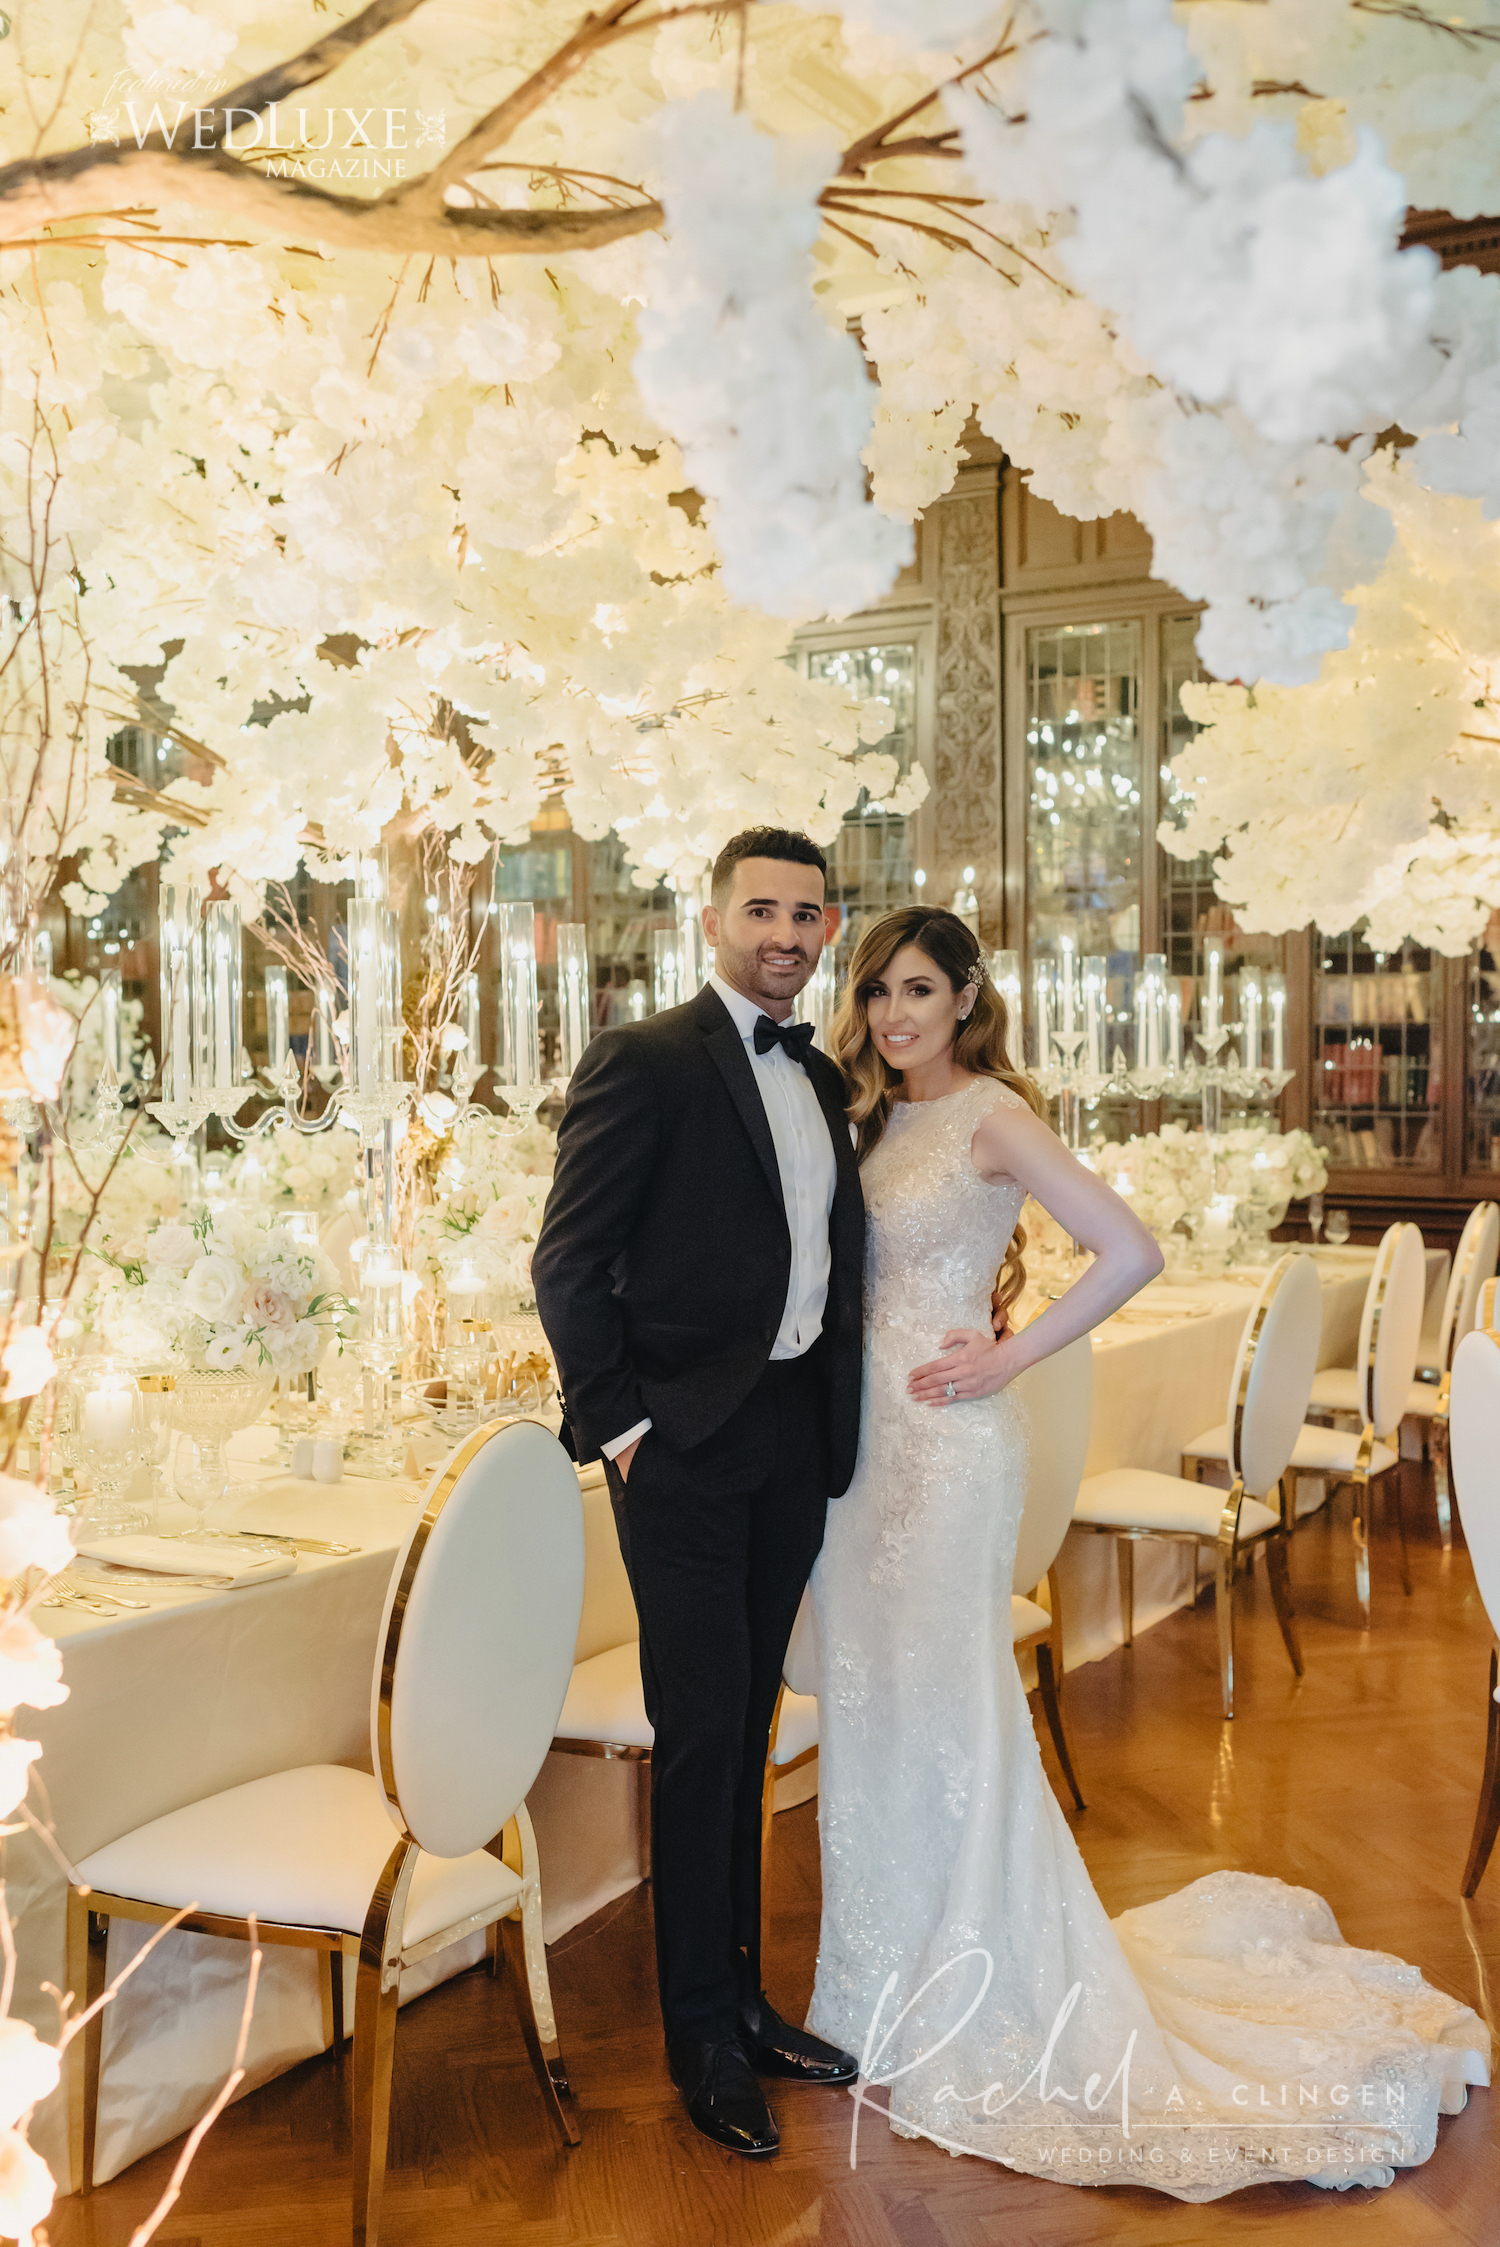 nazem ashley kadri wedding decor